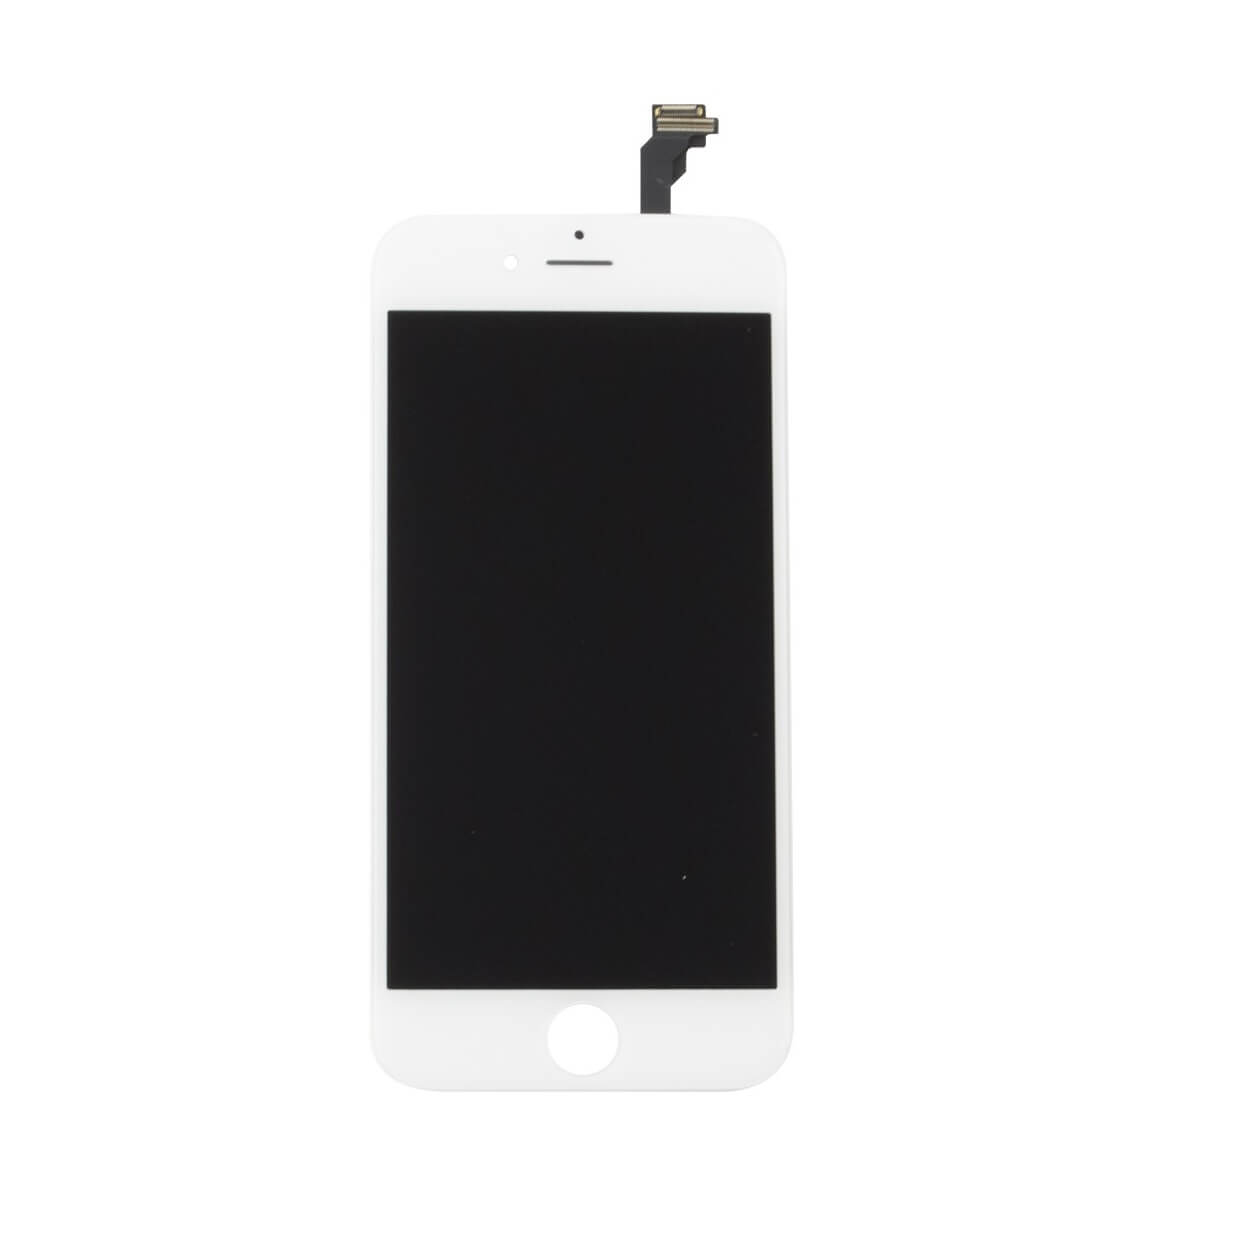 timeless design e5129 85d2d Original Display with Touch Screen for Apple iPhone 6